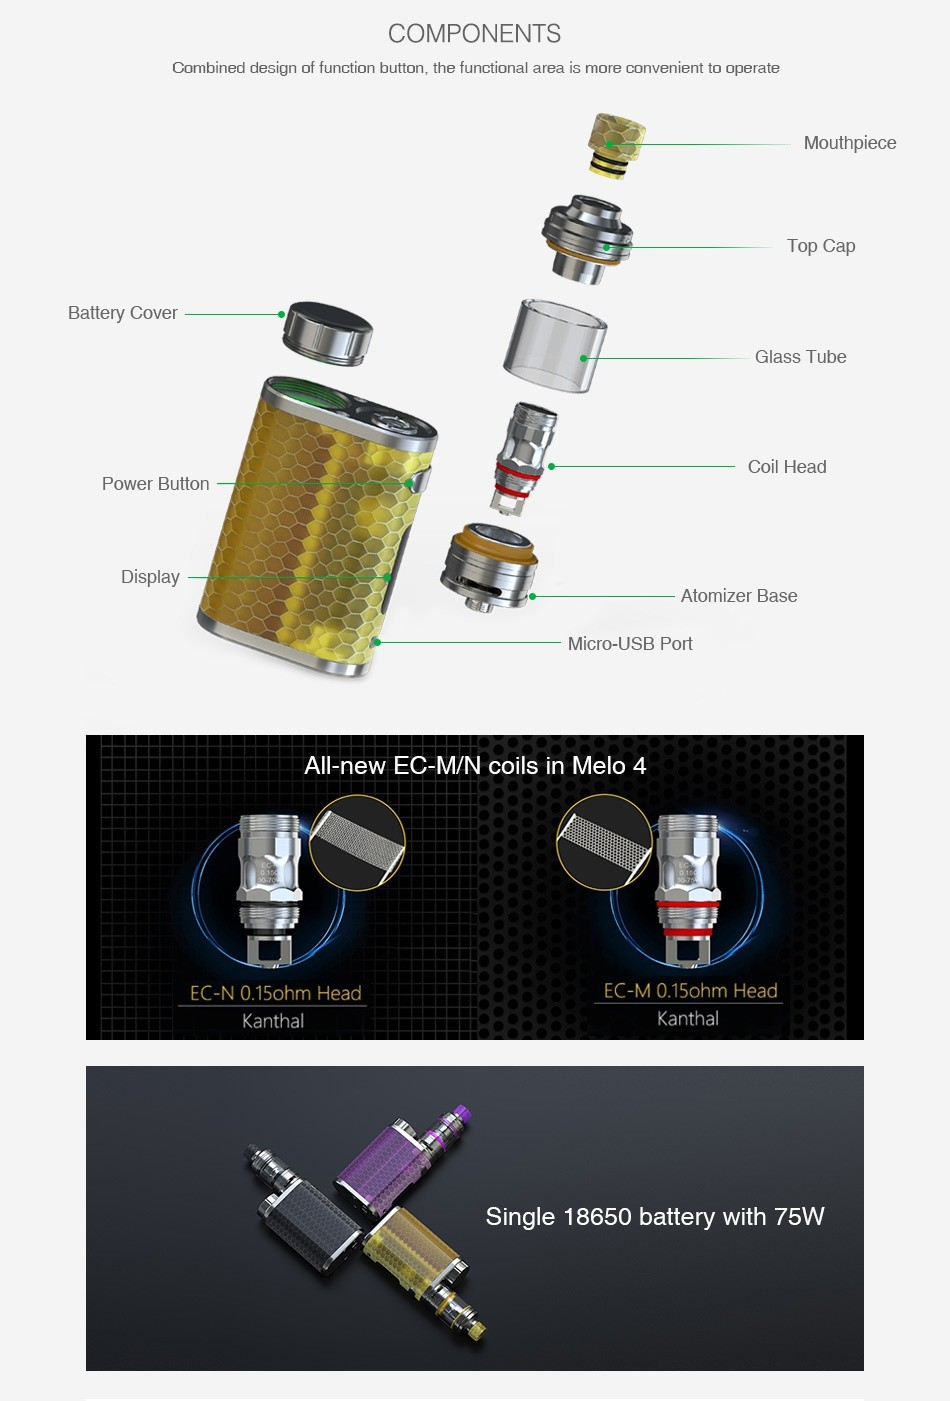 Eleaf iStick Pico Resin 75W TC Kit Limited Edition COMPONENTS Combined design of function button  the functional area is more convenient to operate TOp C Battery Cove Glass tube Coil Head Power Button play Atomizer Micro USB Port All new EC mn coils in melo 4 EC NO 15ohm Head EC M 0 15ohm Head Kantha Kanthal Single 18650 battery with 75W